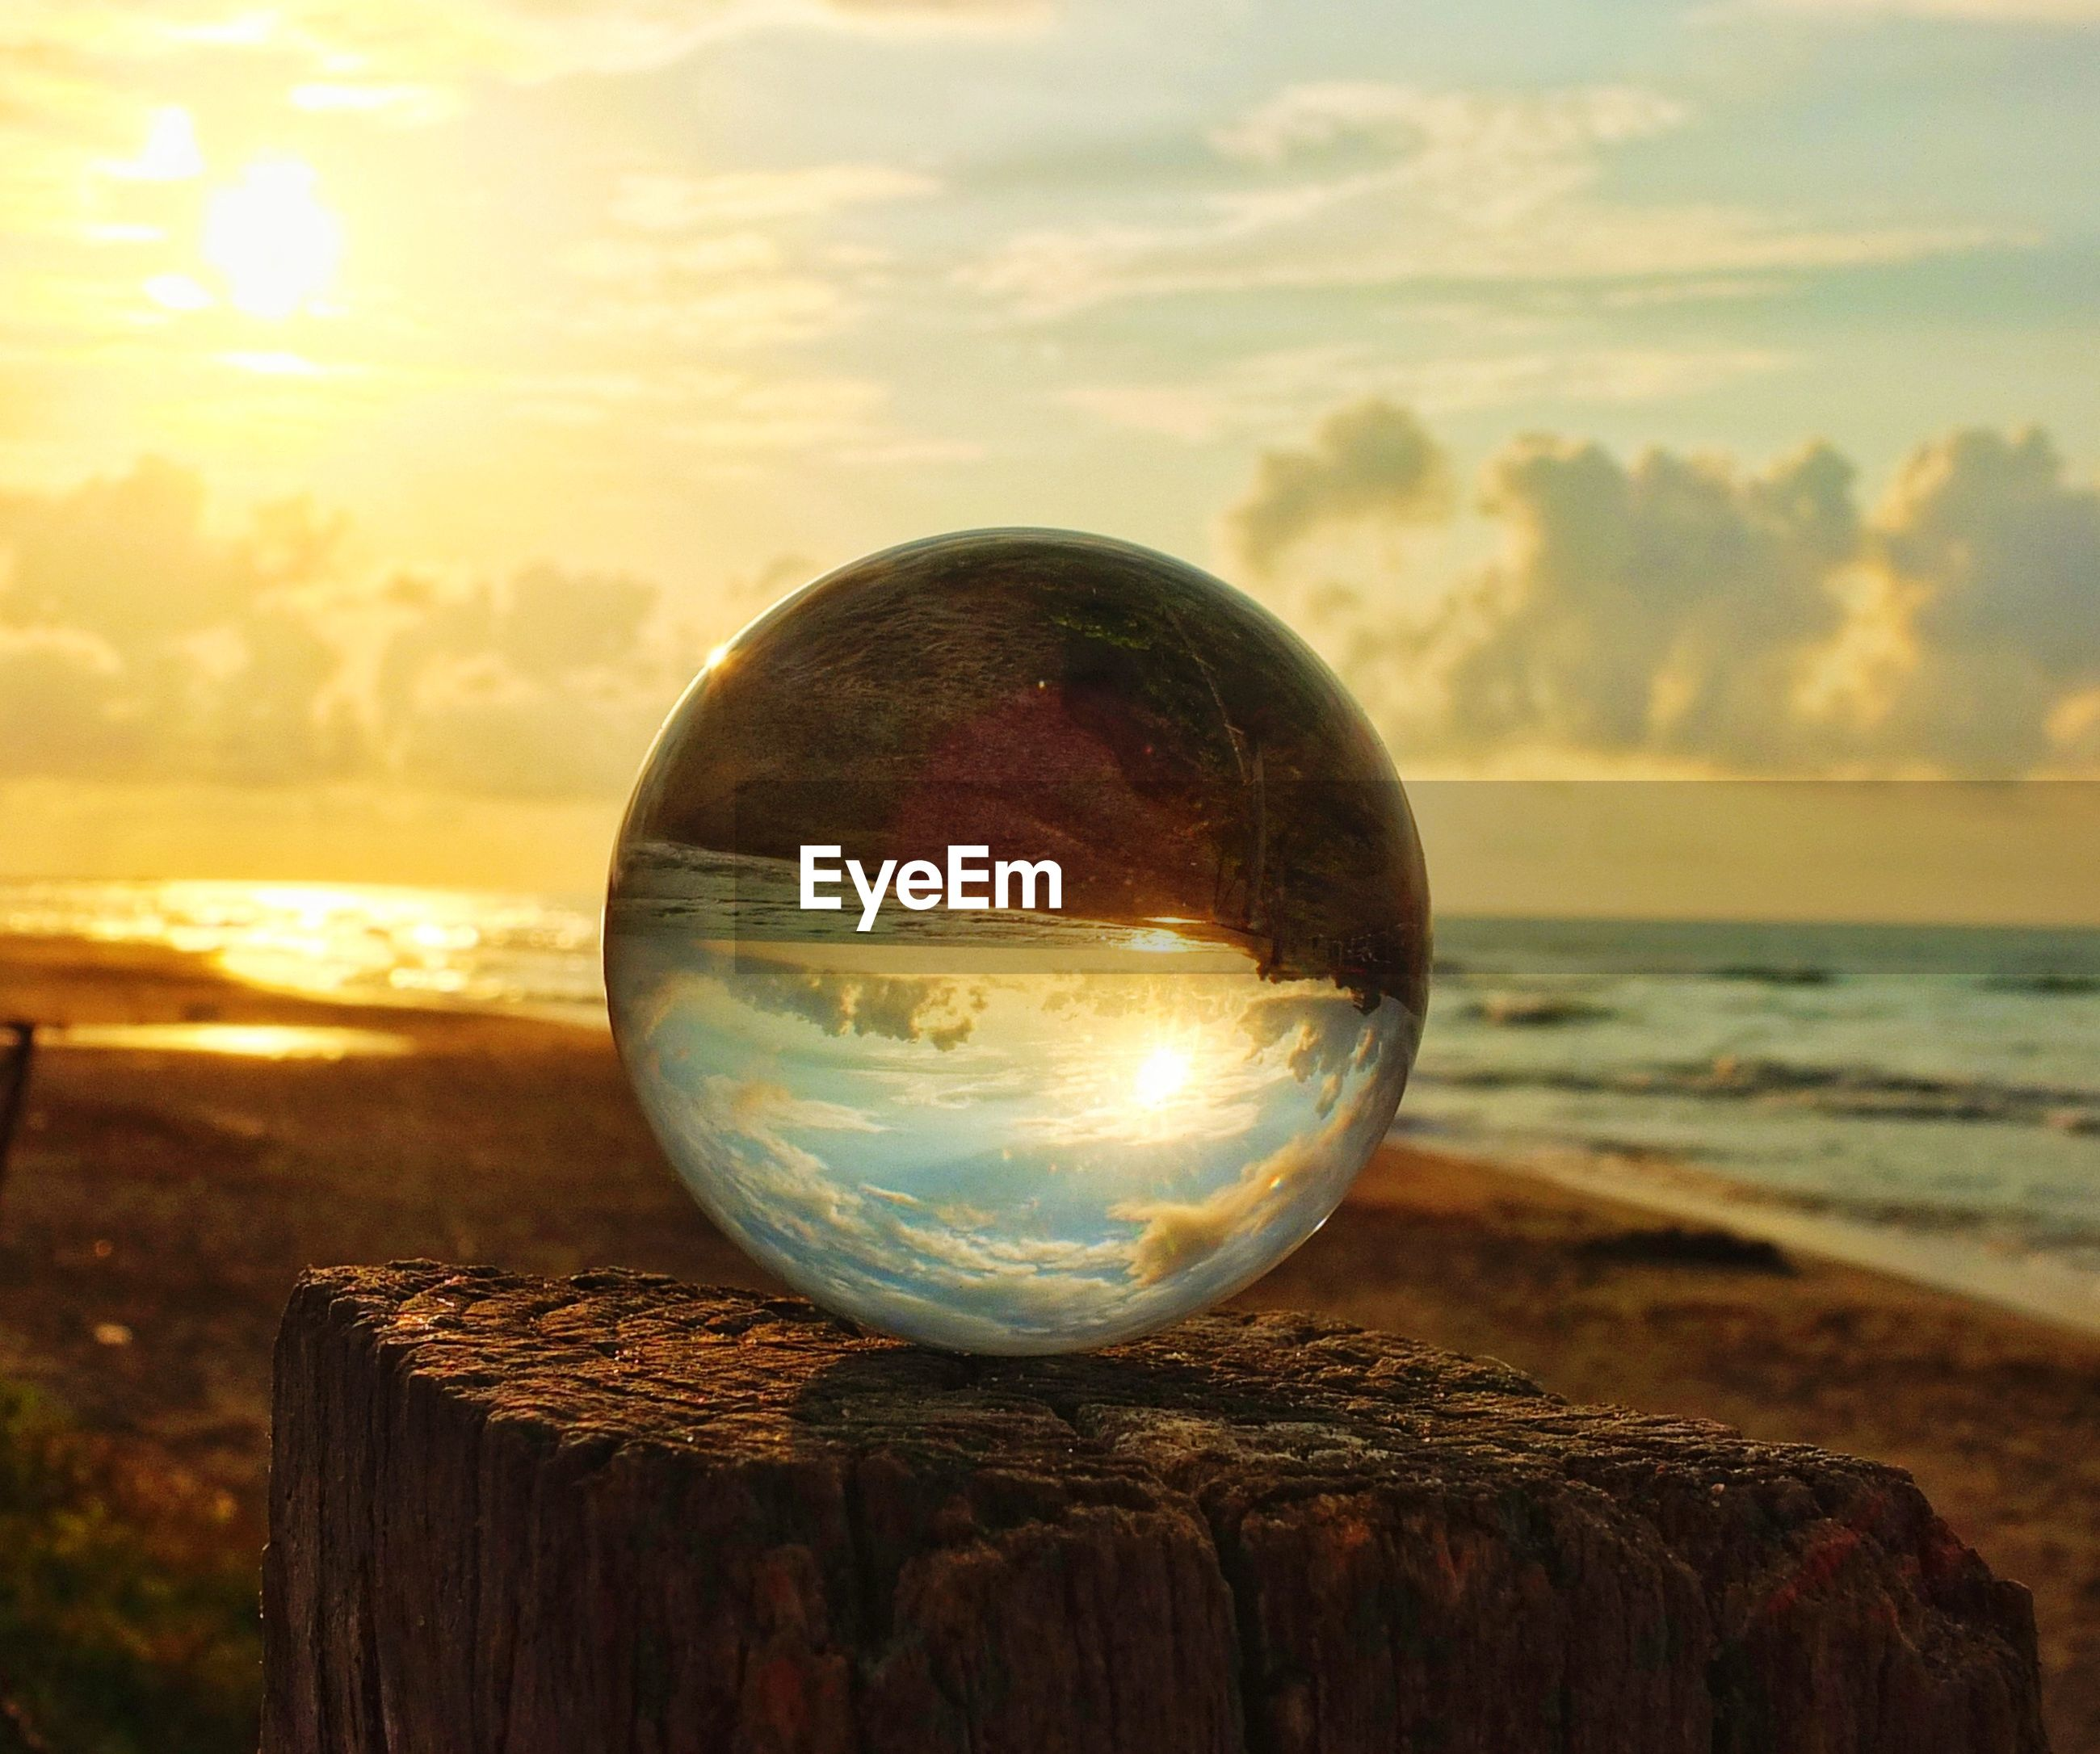 crystal ball, sphere, reflection, sea, sunset, horizon over water, sky, no people, beach, tranquility, nature, outdoors, crystal, close-up, scenics, tree, water, beauty in nature, day